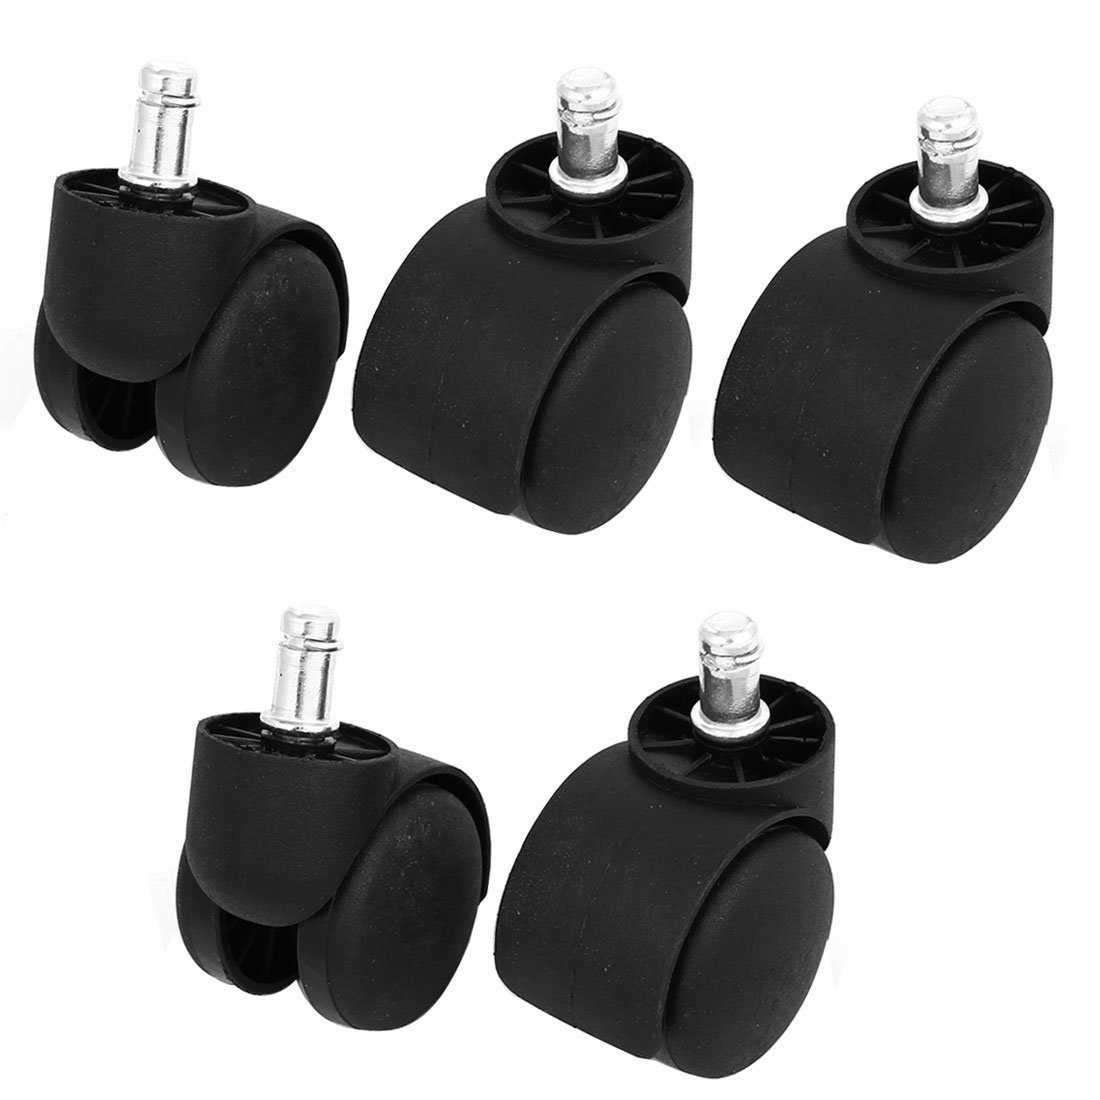 swh805840ca258040 SuperWarehouse 11mm x 22mm Grip Ring Stem Office Chair Swivel Twin Wheel Caster 5 Pcs